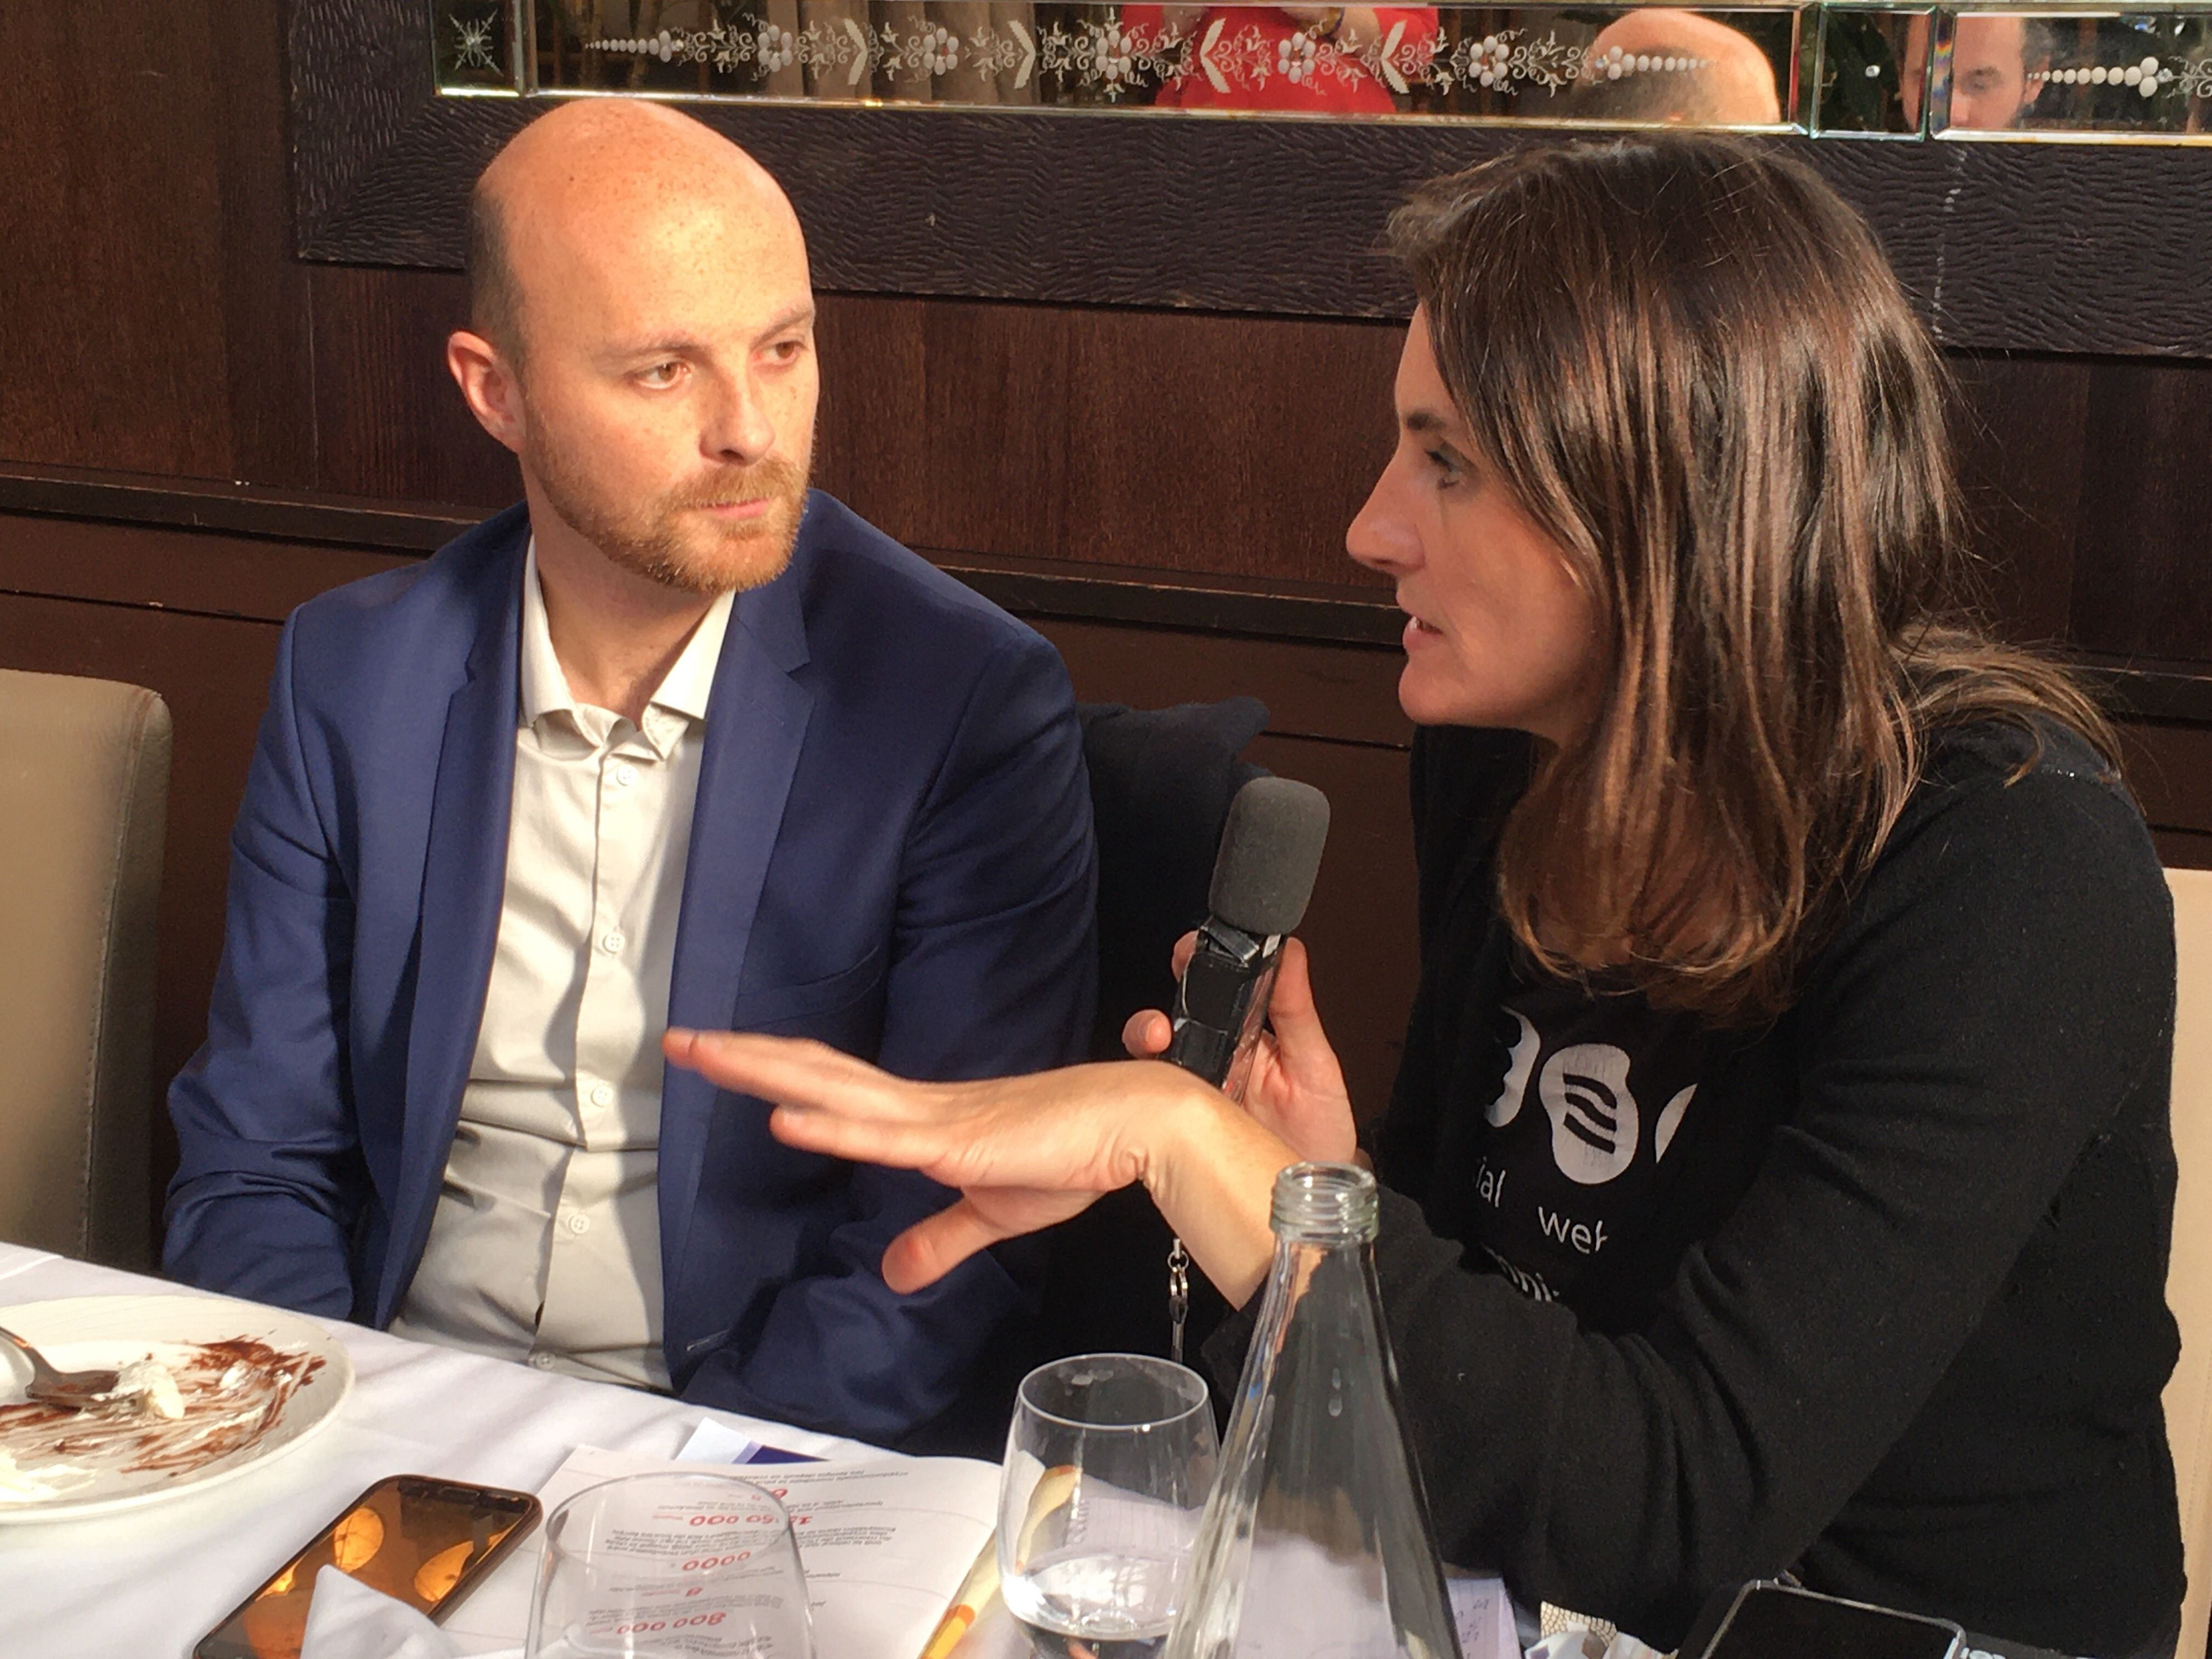 ARK.io CEO FX Thoorens (left) attending a press lunch.